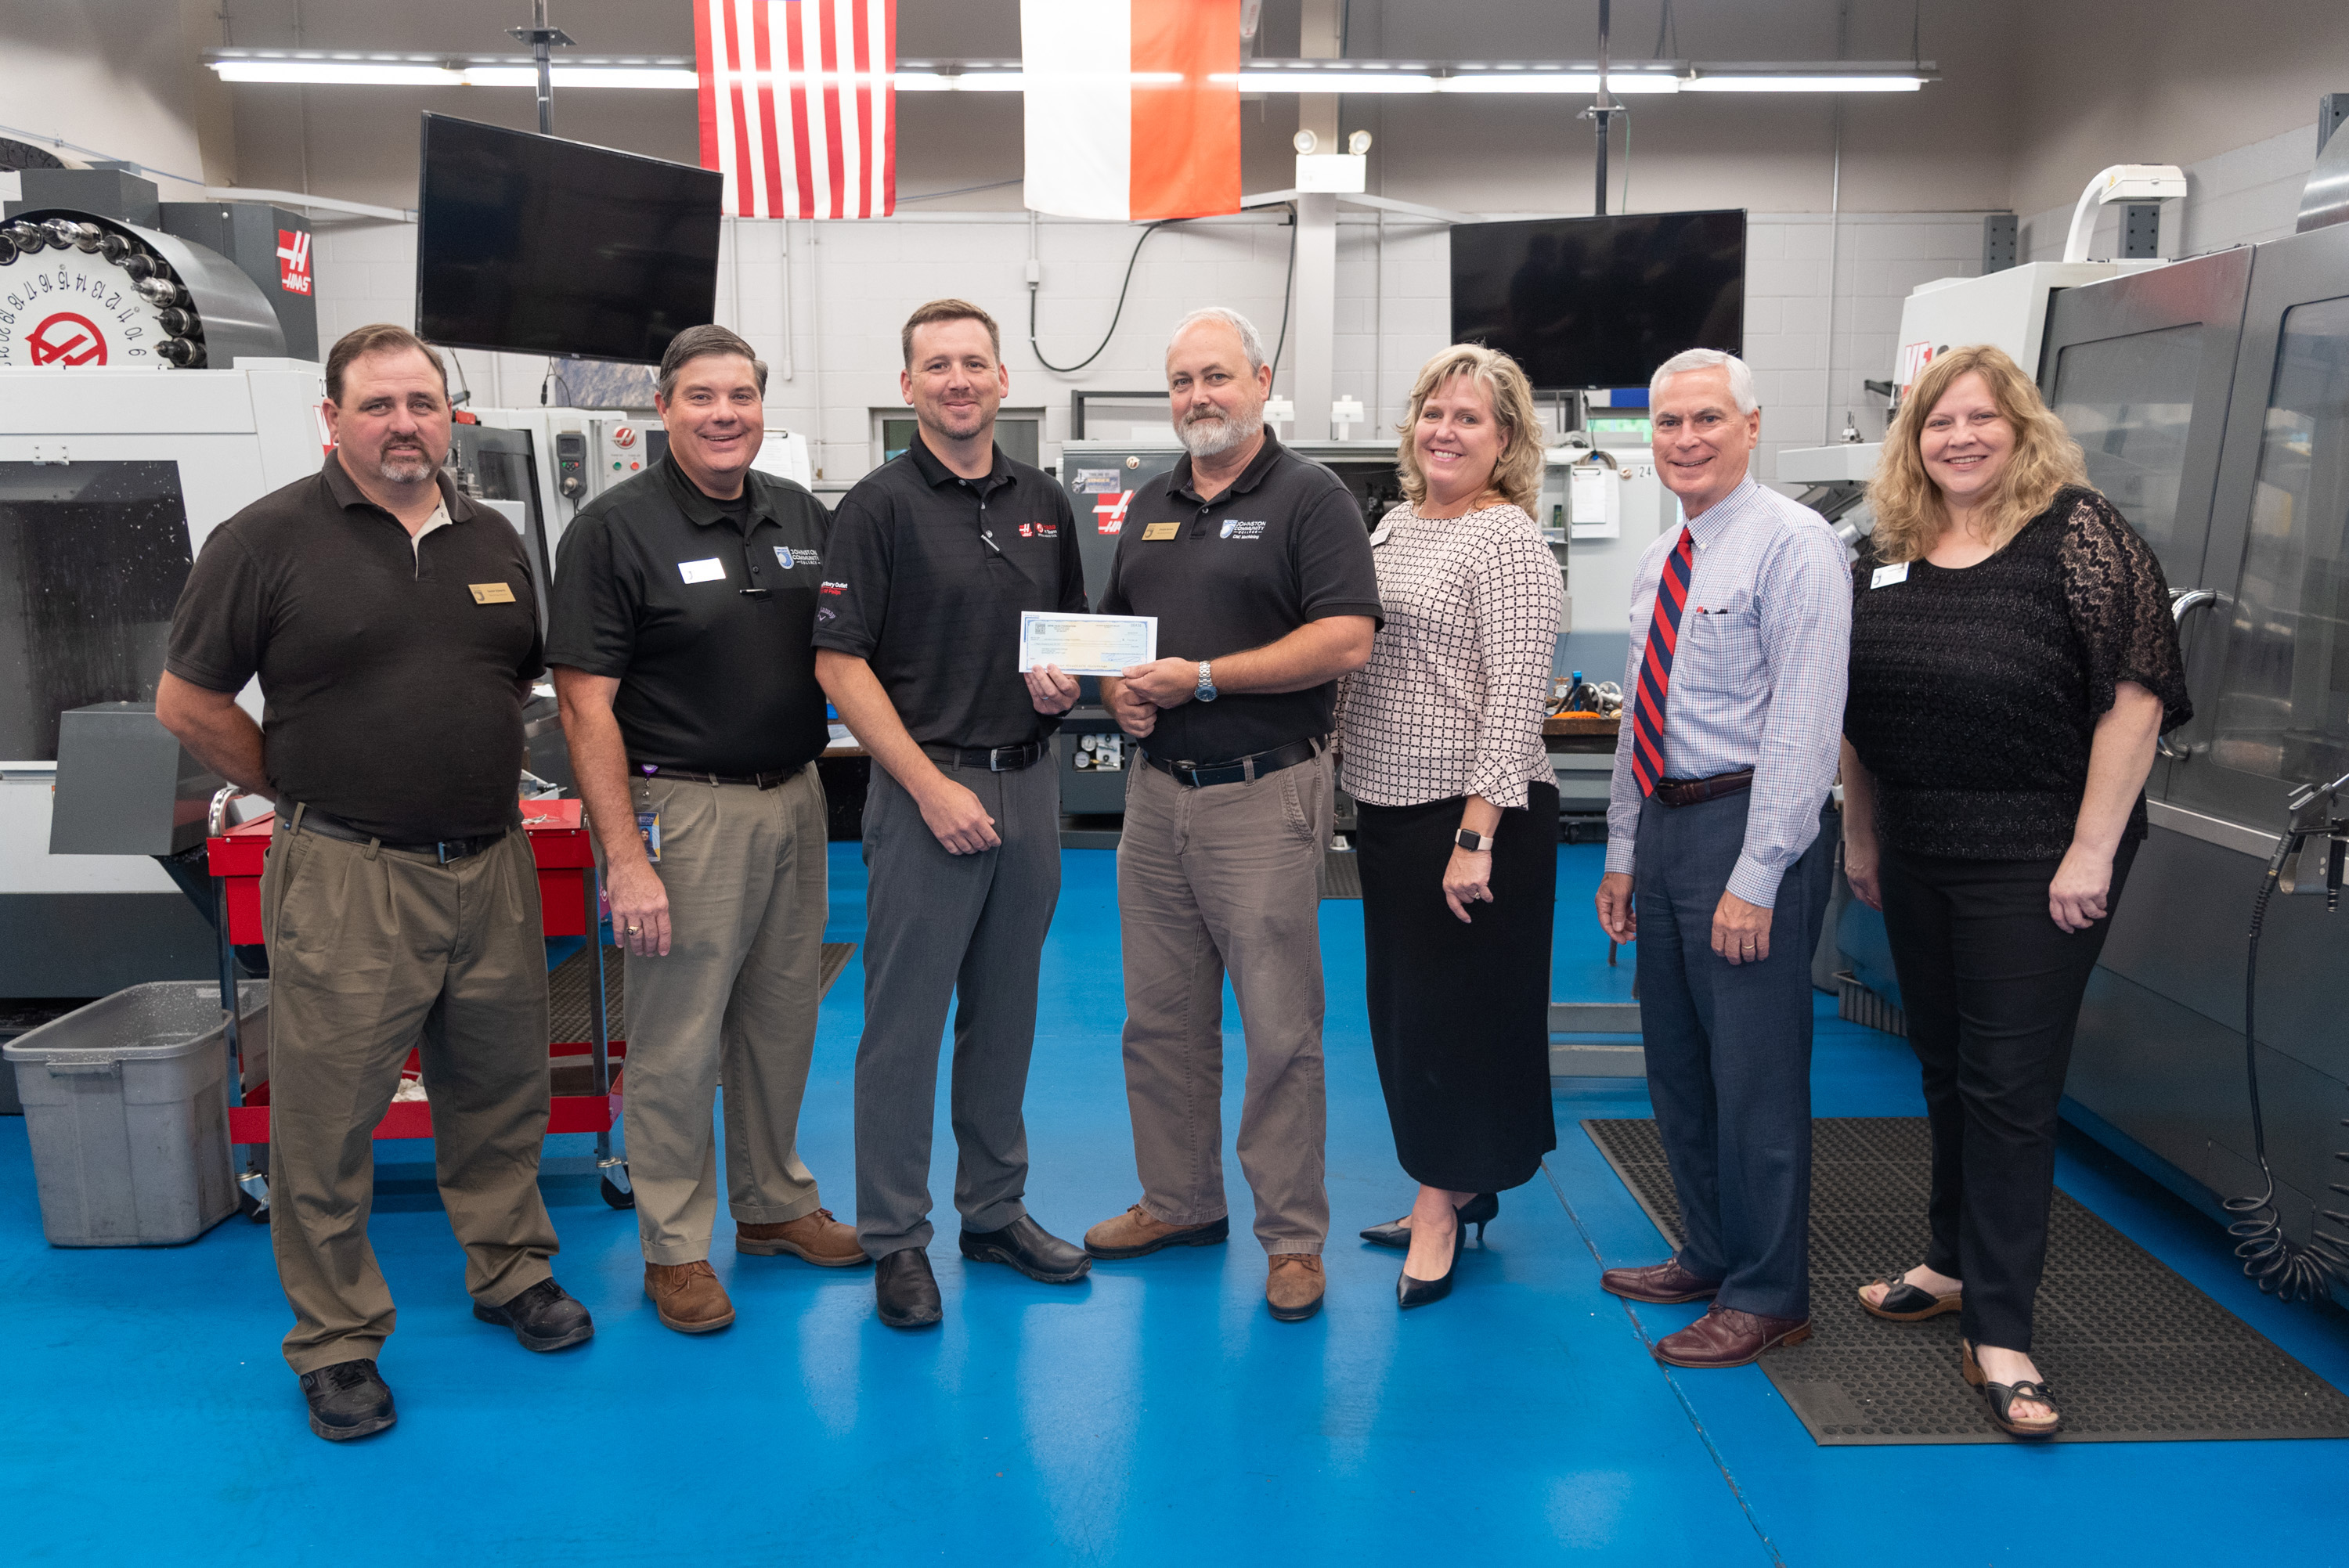 Bill Cranford of Phillips Corporation representing the Gene Haas Foundation presents a check for $15,000 to JCC officials. The funds will support scholarships for machining students at the college.